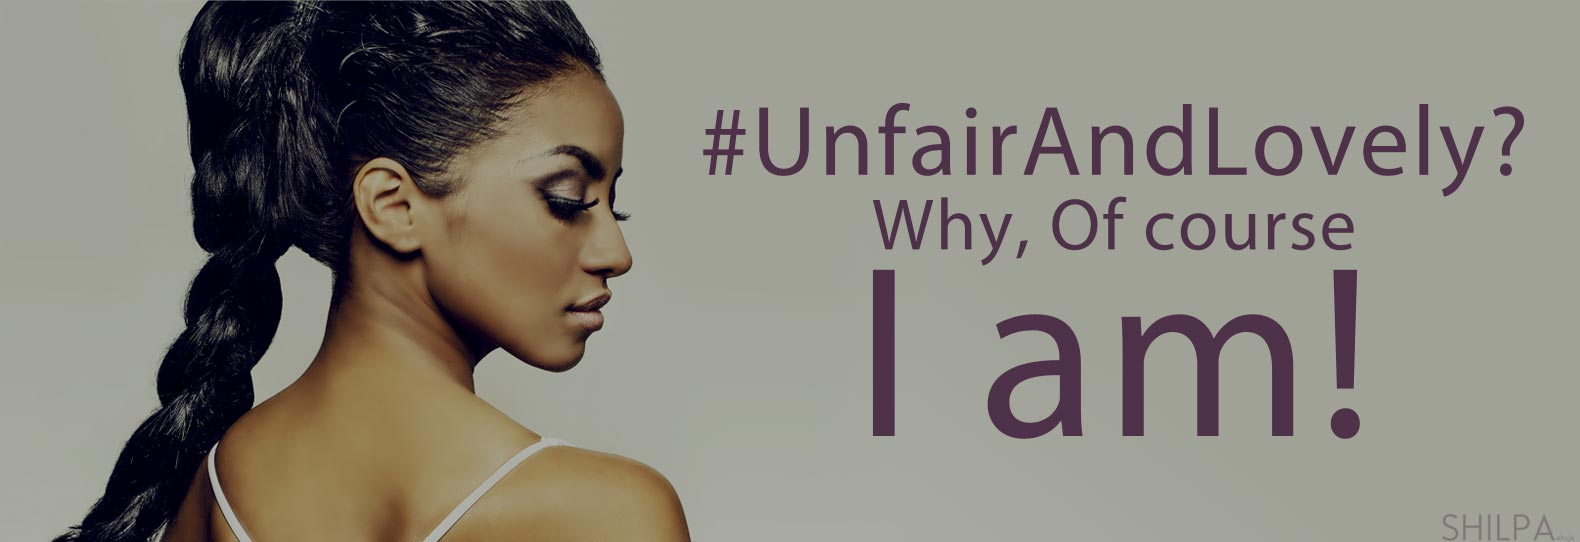 i-am-unfairandlovely-unfair-and-lovely-so-what-shilpa-ahuja-inspirational-motivation-quote-women-girls-dark-skin-tone-color